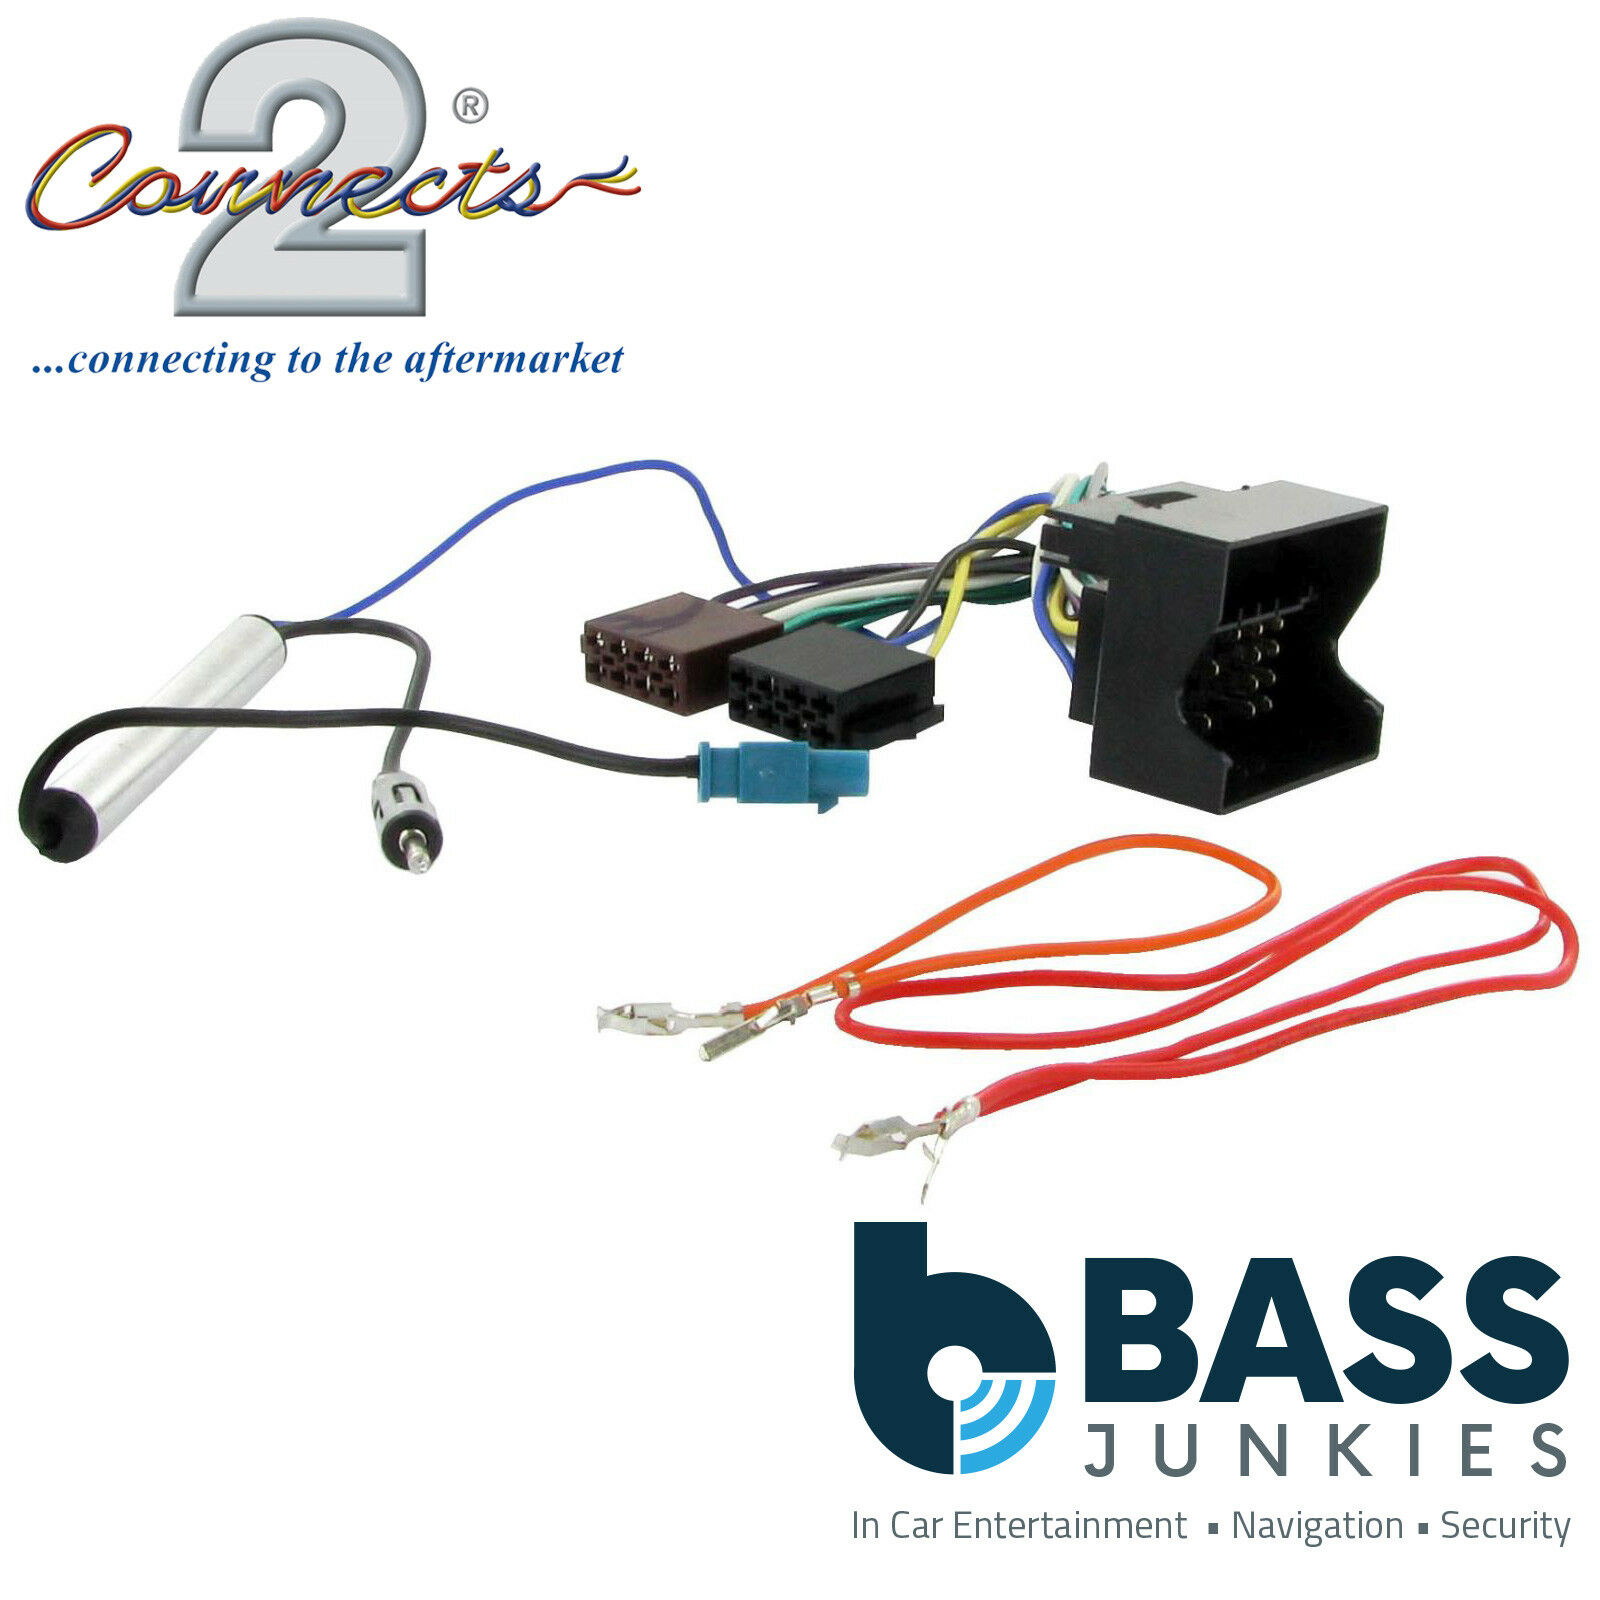 Vw Volkswagen Eos 2006 Radio Stereo Wiring Harness Adapter Lead Iso Converter 1 Of 1free Shipping See More